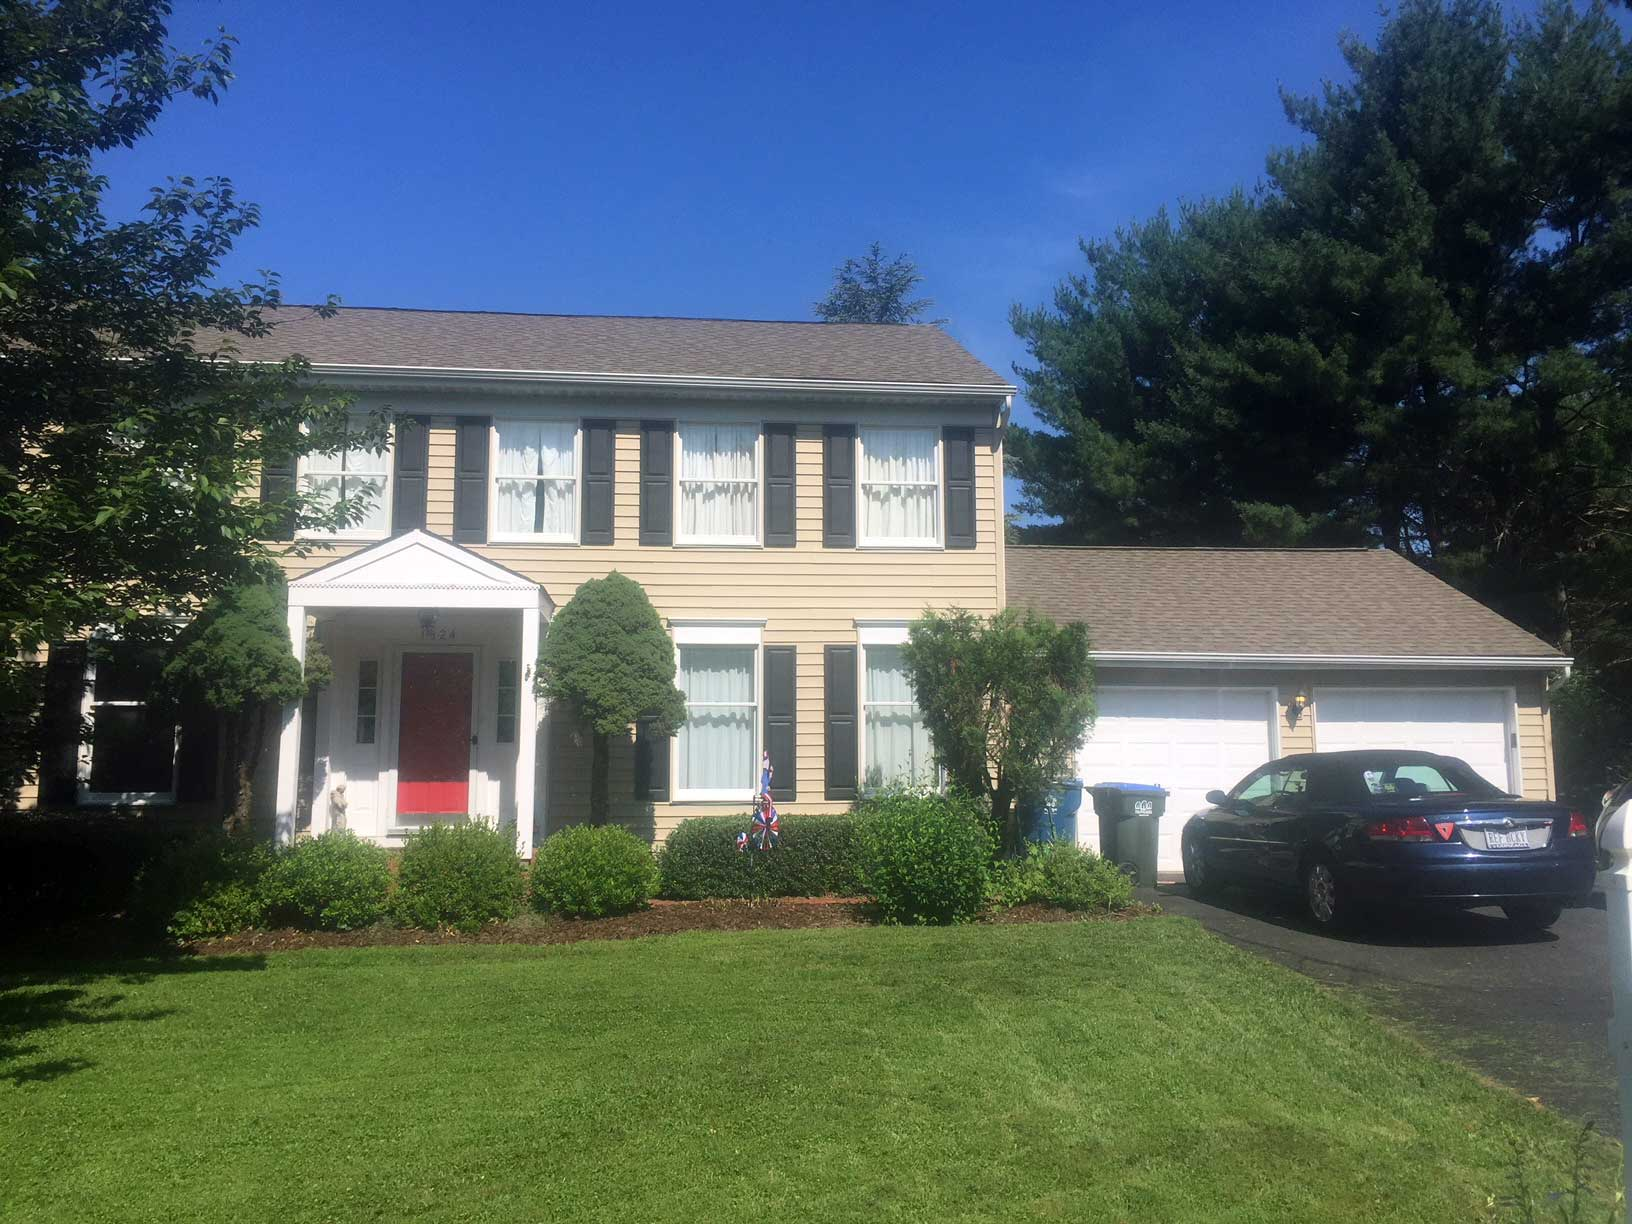 824 Clovermeadow Drive,  Vienna VA, 22182 — For Sale $848,888